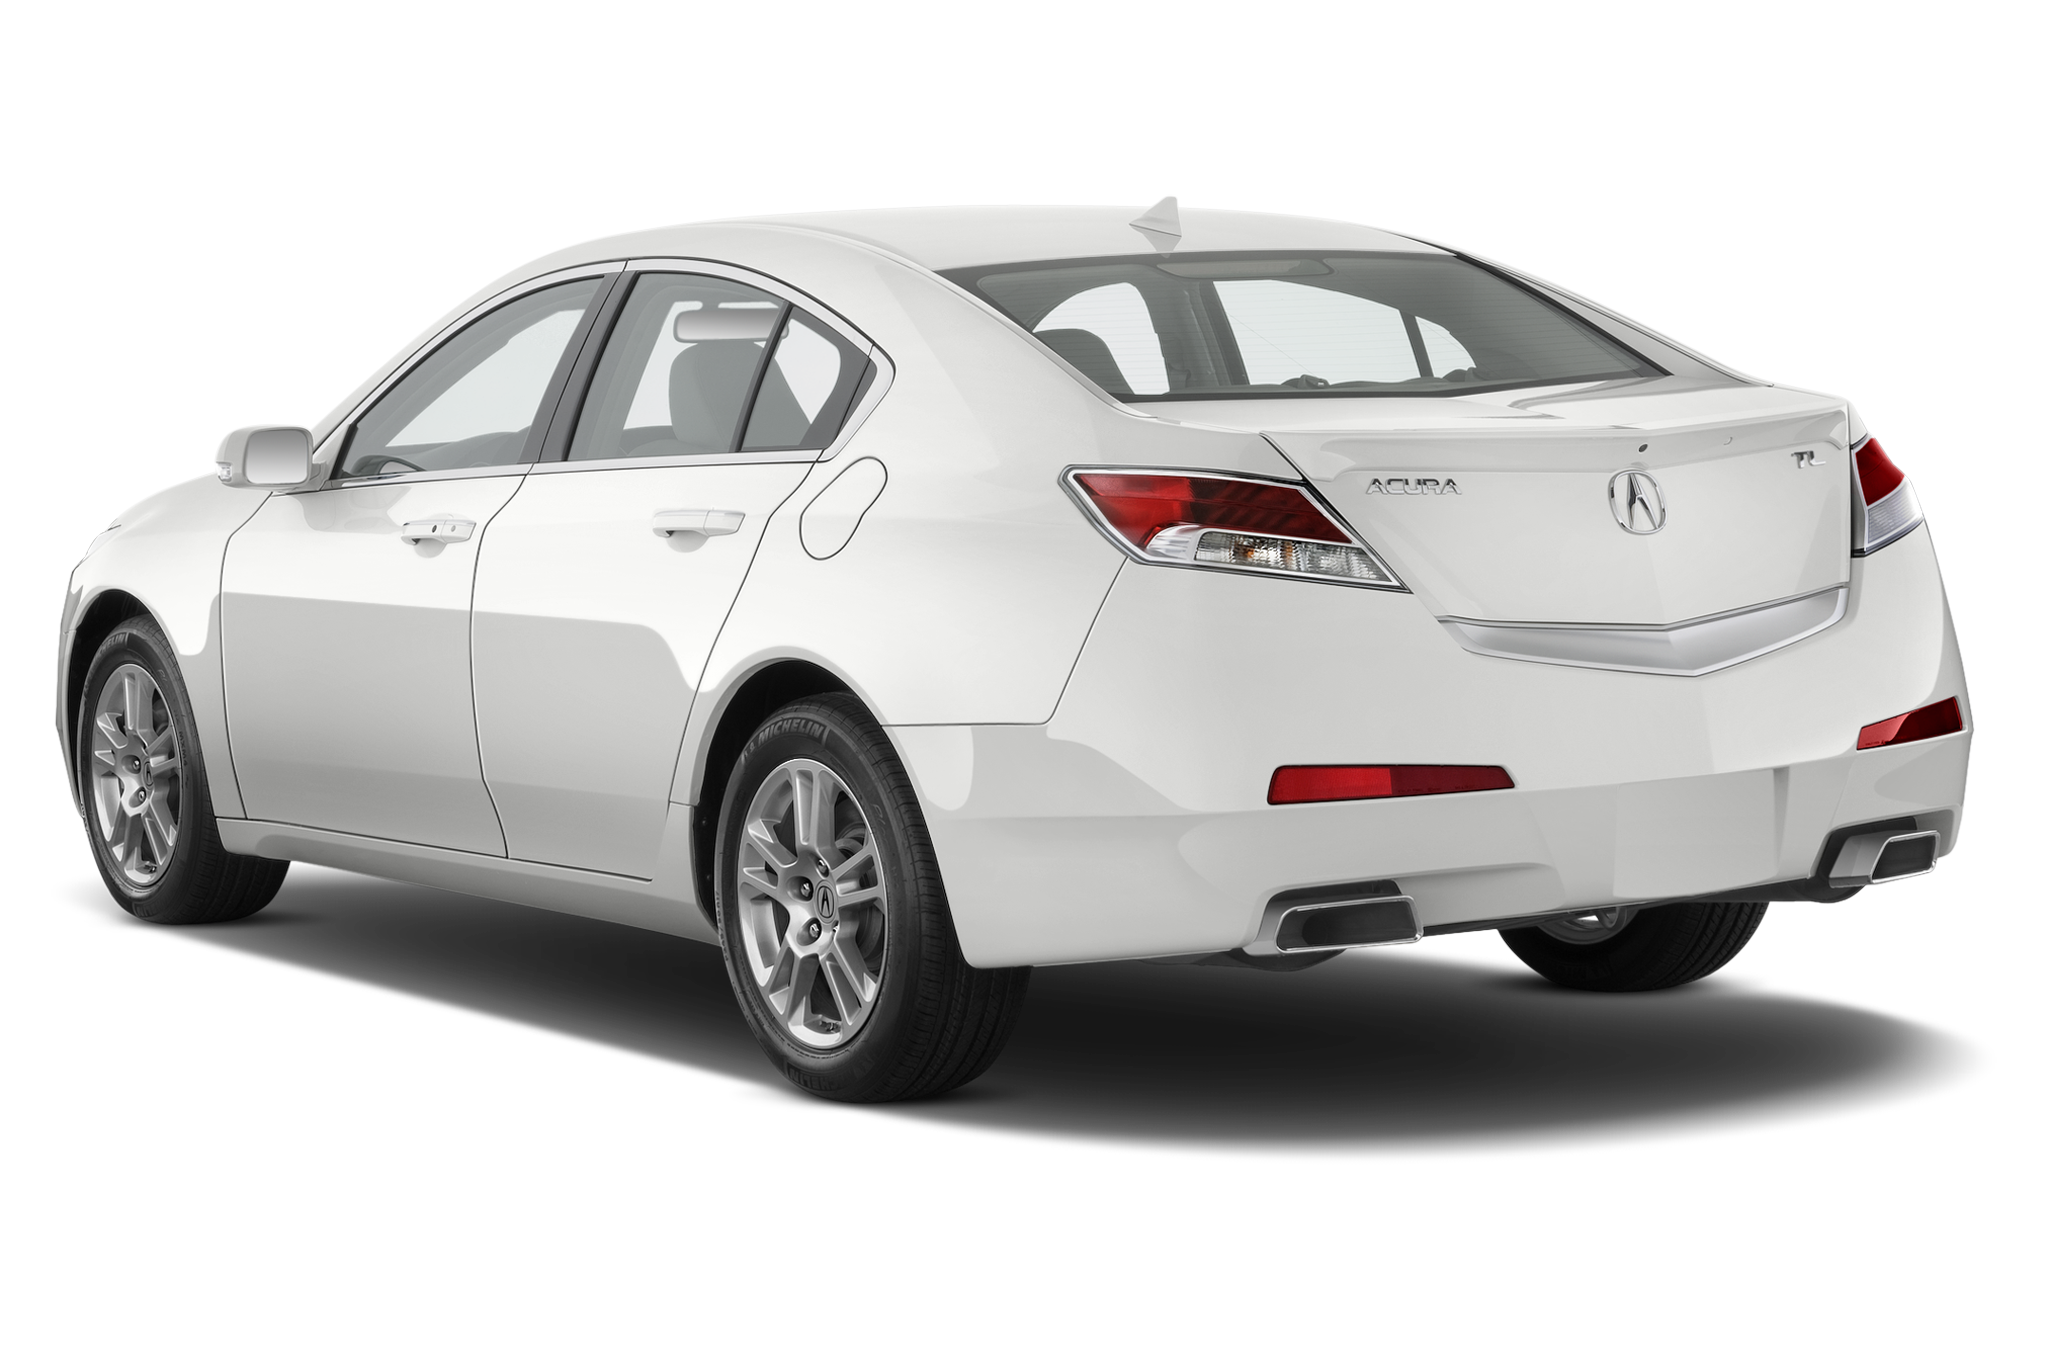 2010 acura tl sh awd 6mt acura midsize sedan review. Black Bedroom Furniture Sets. Home Design Ideas